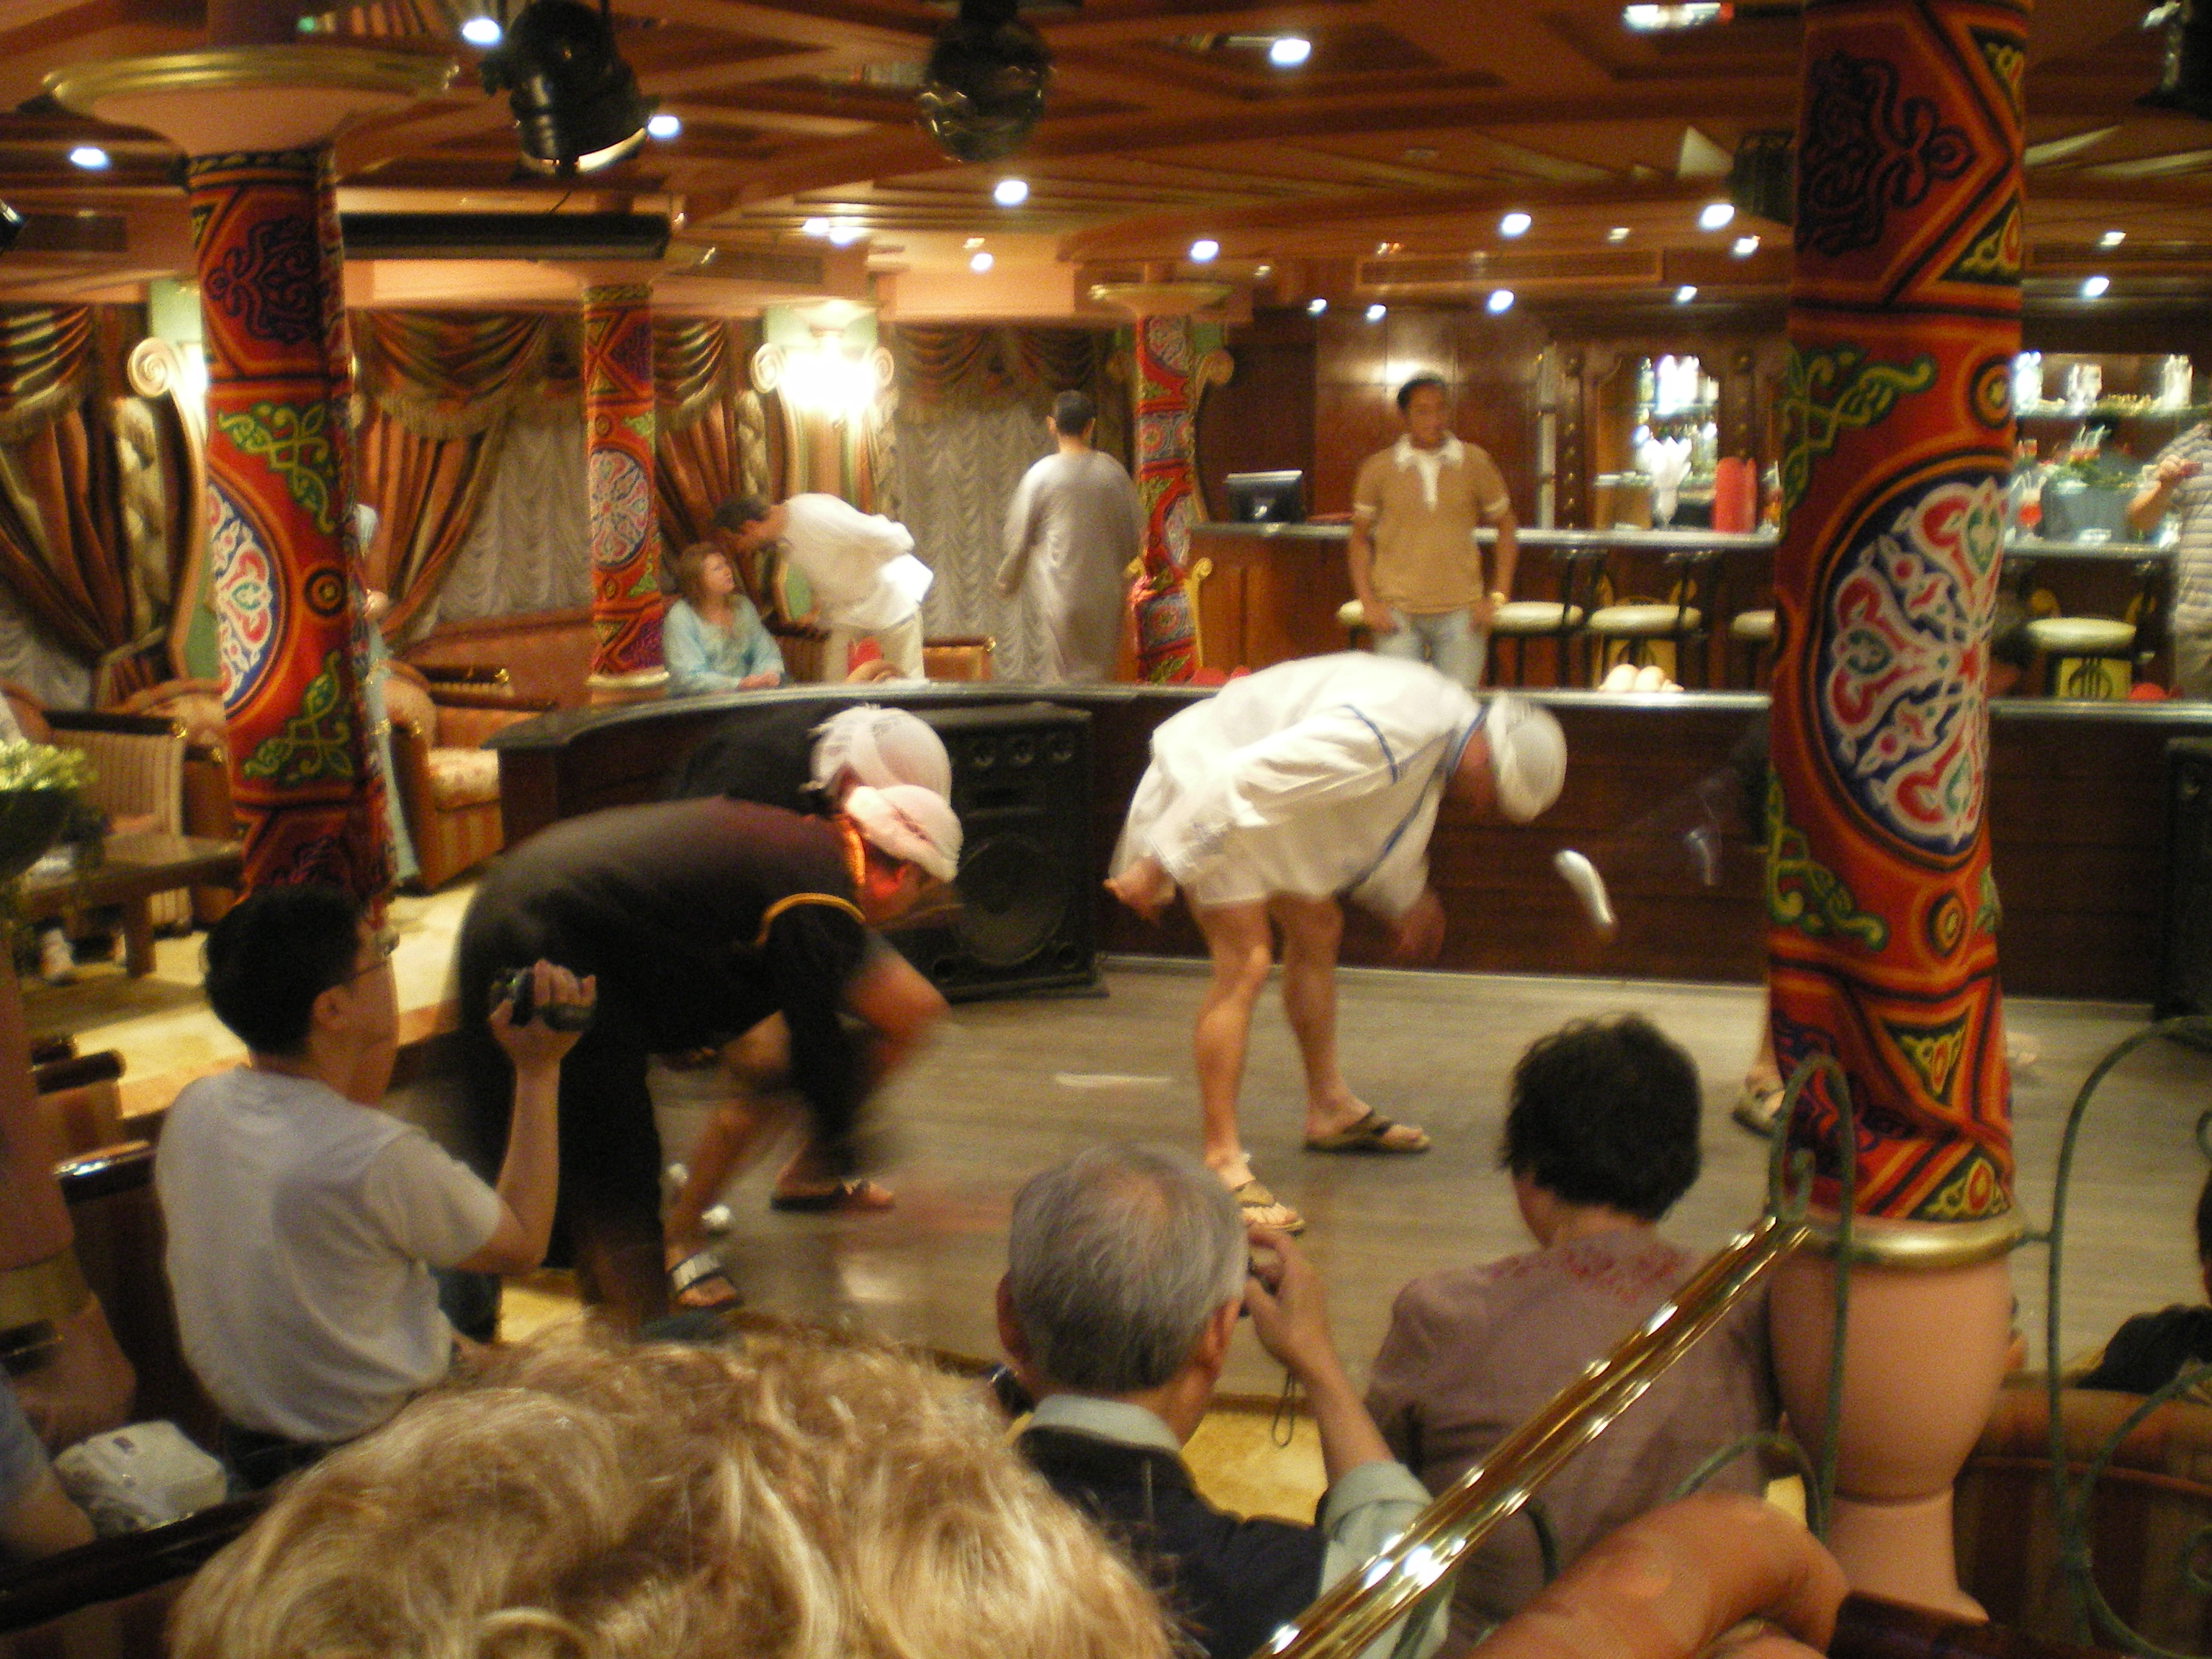 Egypt Nile Cruise entertainment with traditional dancing